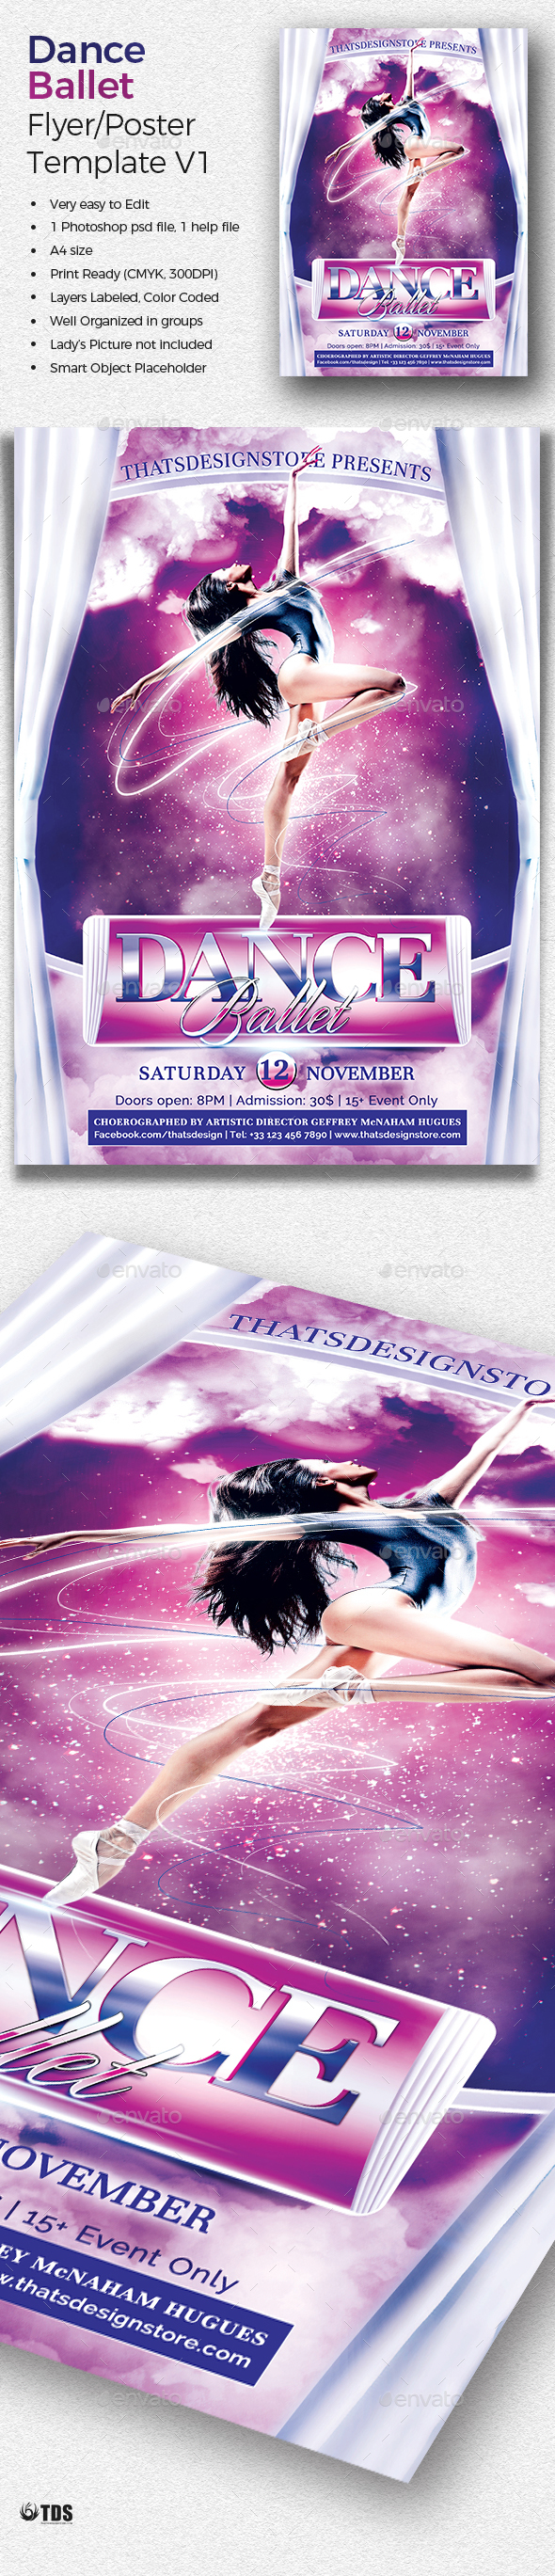 Dance Ballet Flyer Template V1 - Concerts Events